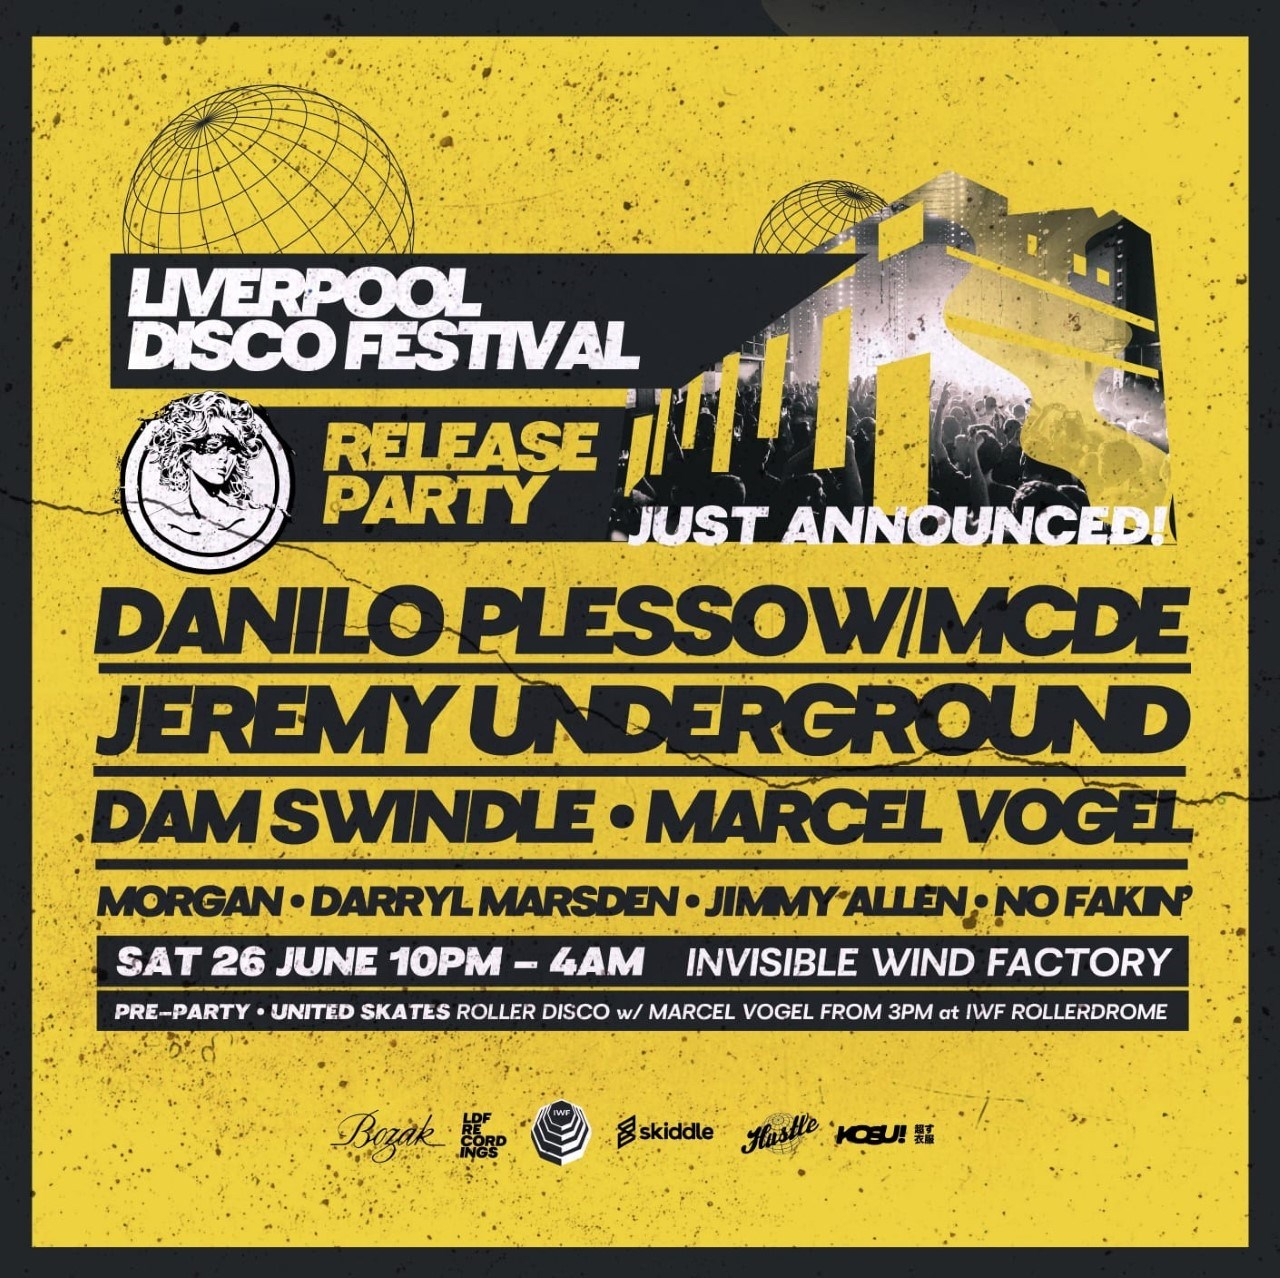 Liverpool Disco Festival Release Party with Jeremy Underground, Dam Swindle & More - Flyer front